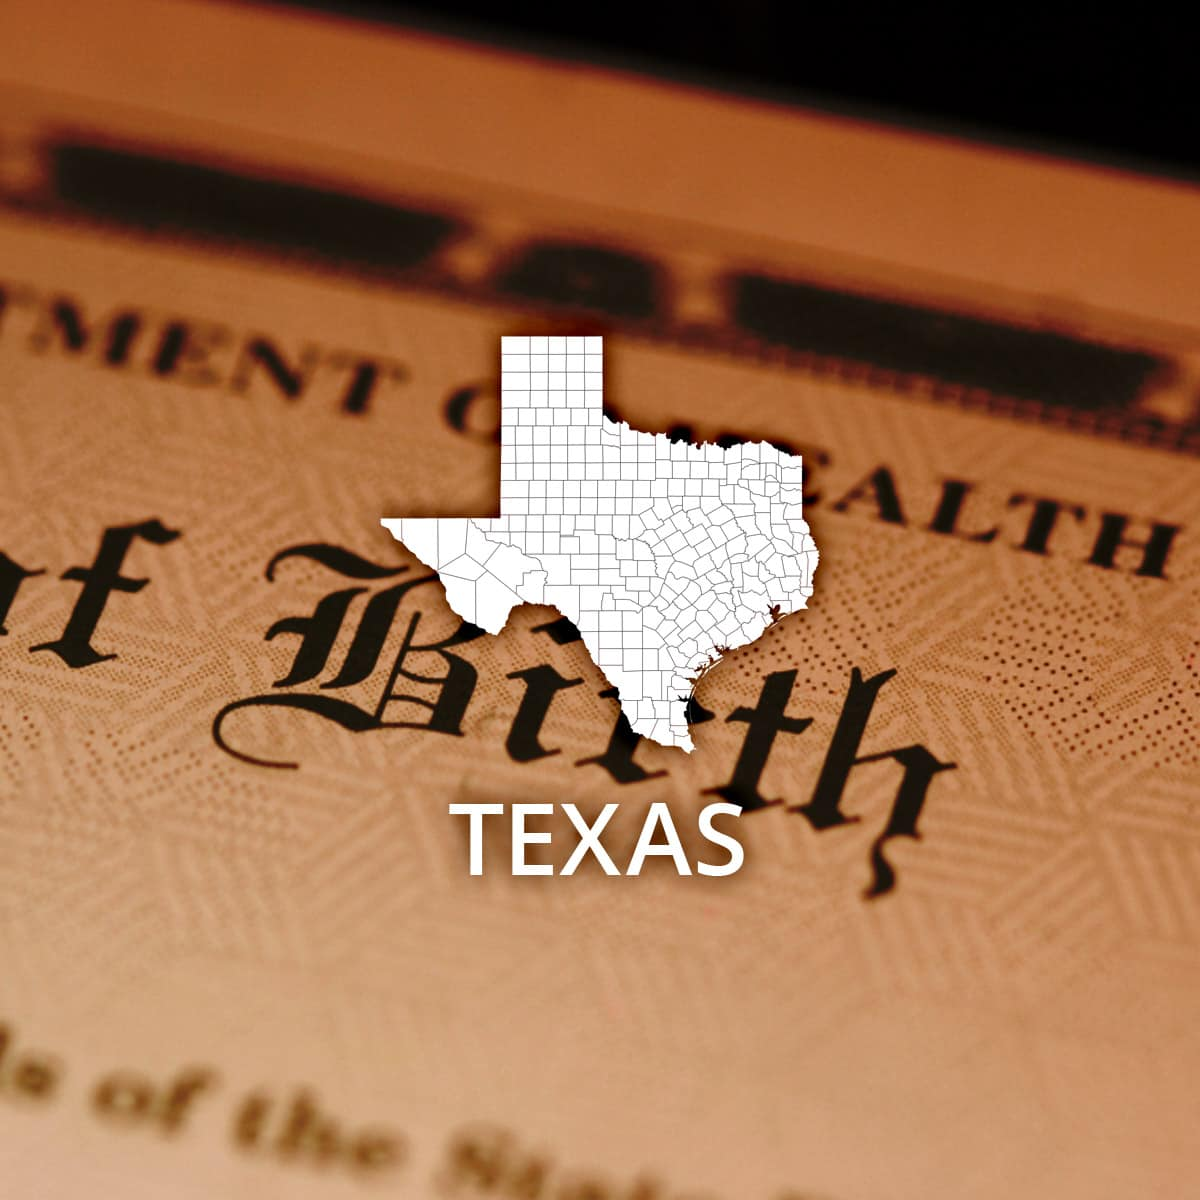 Where to Obtain a Texas Birth Certificate